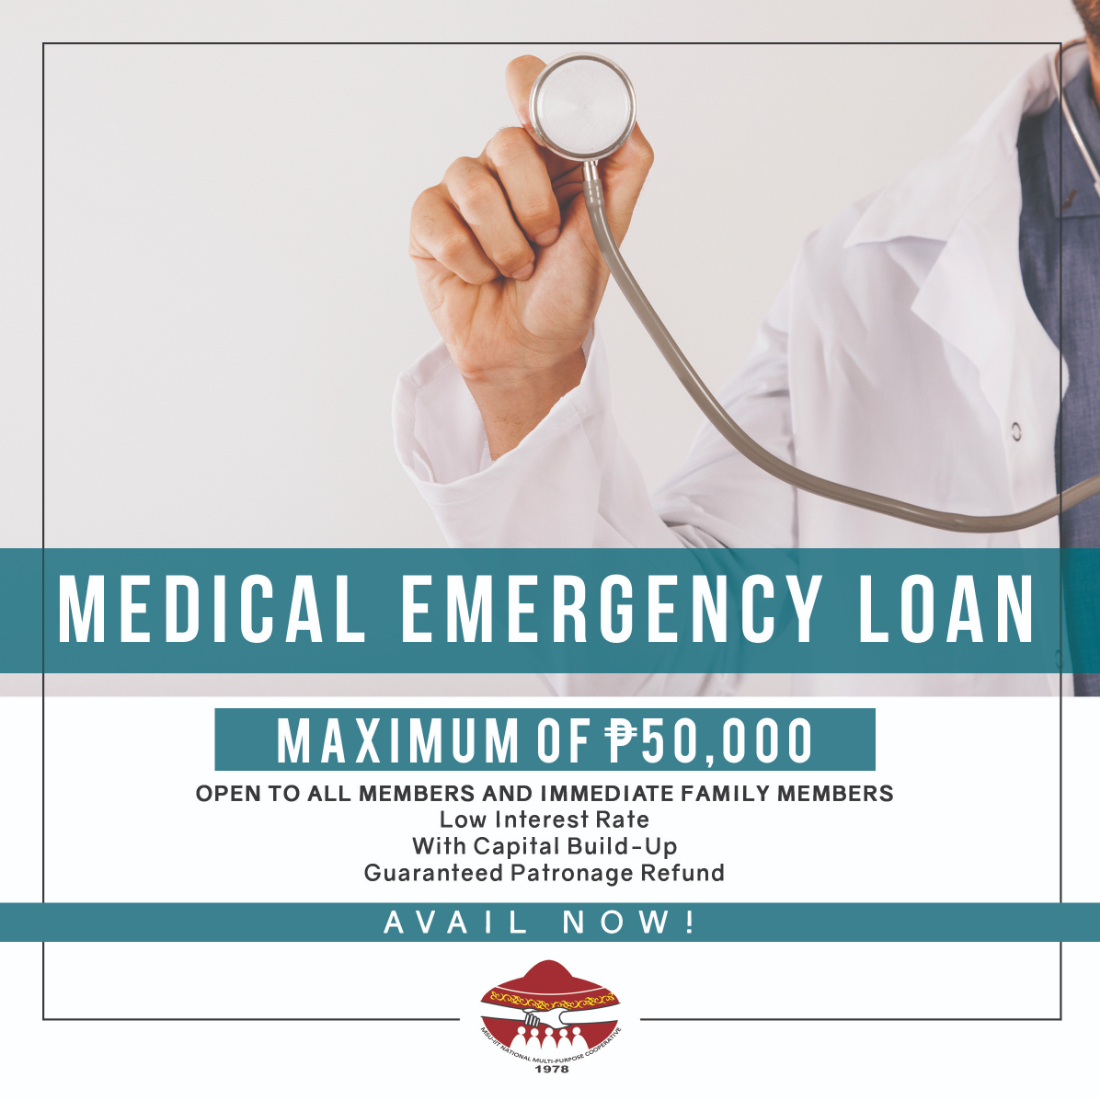 Medical Emergency loan